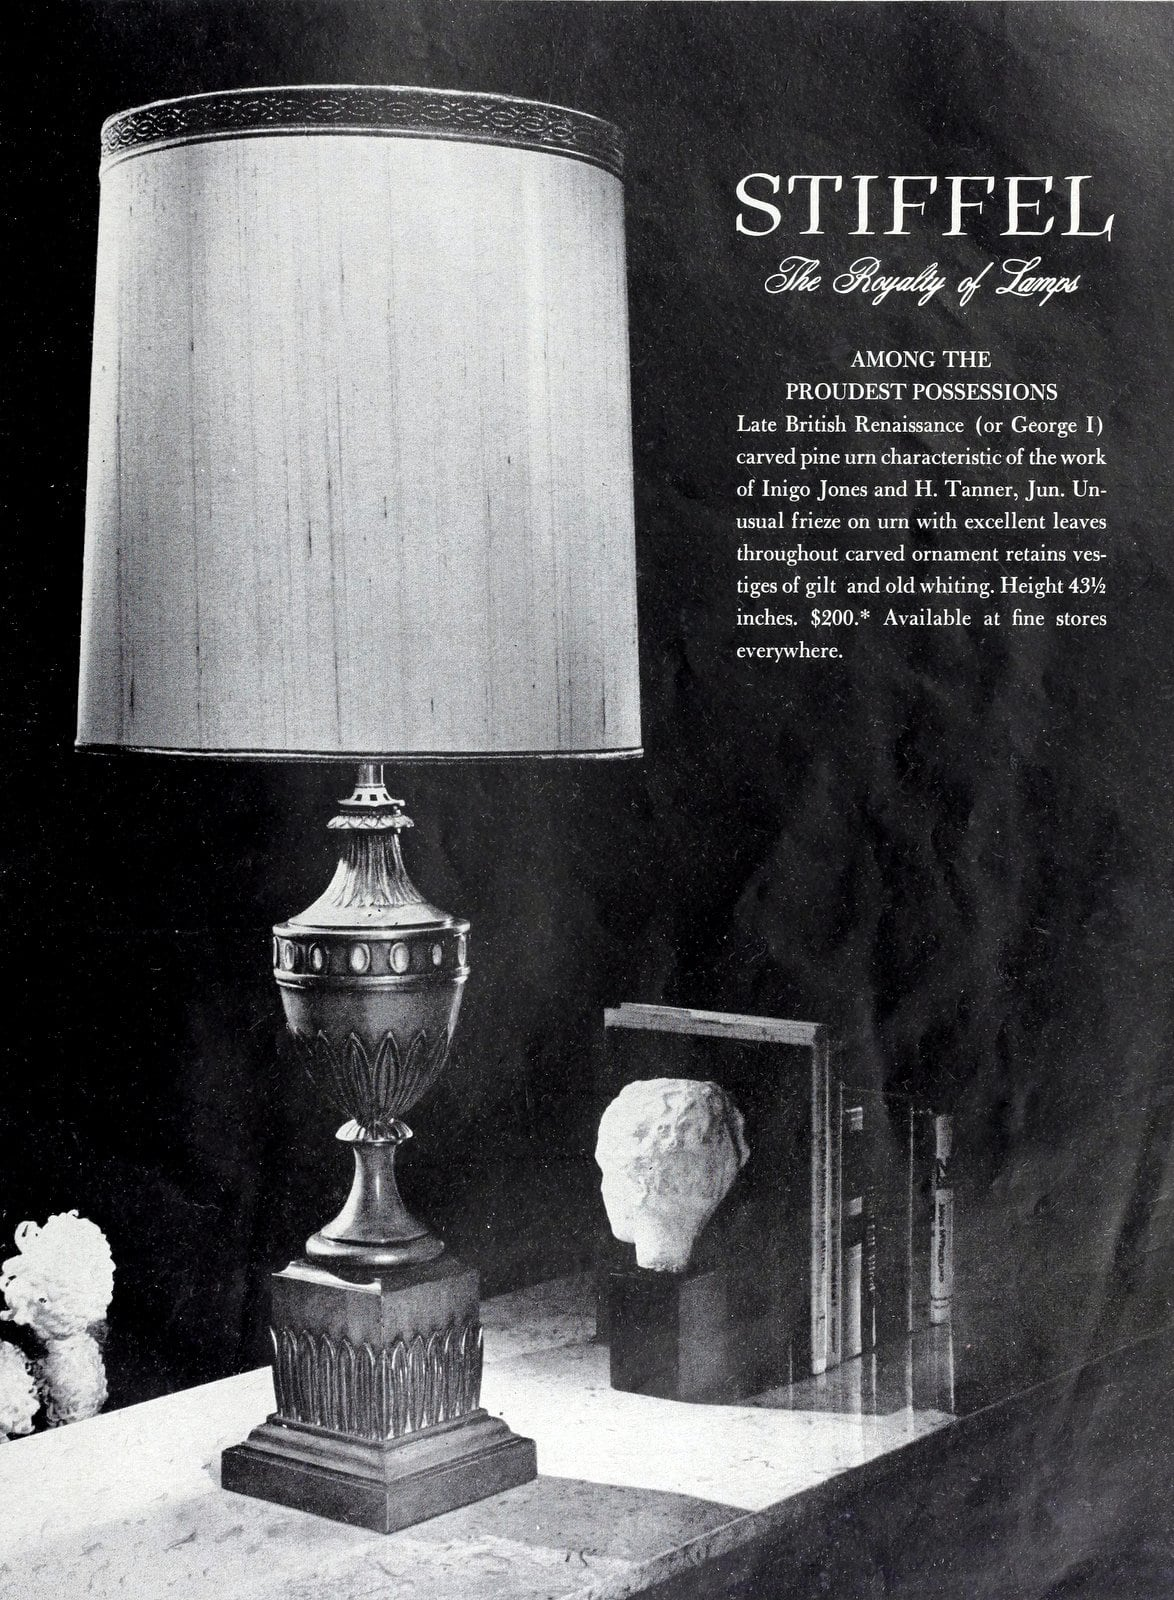 Classic-style carved pine urn lamp base with silk shade (1962)